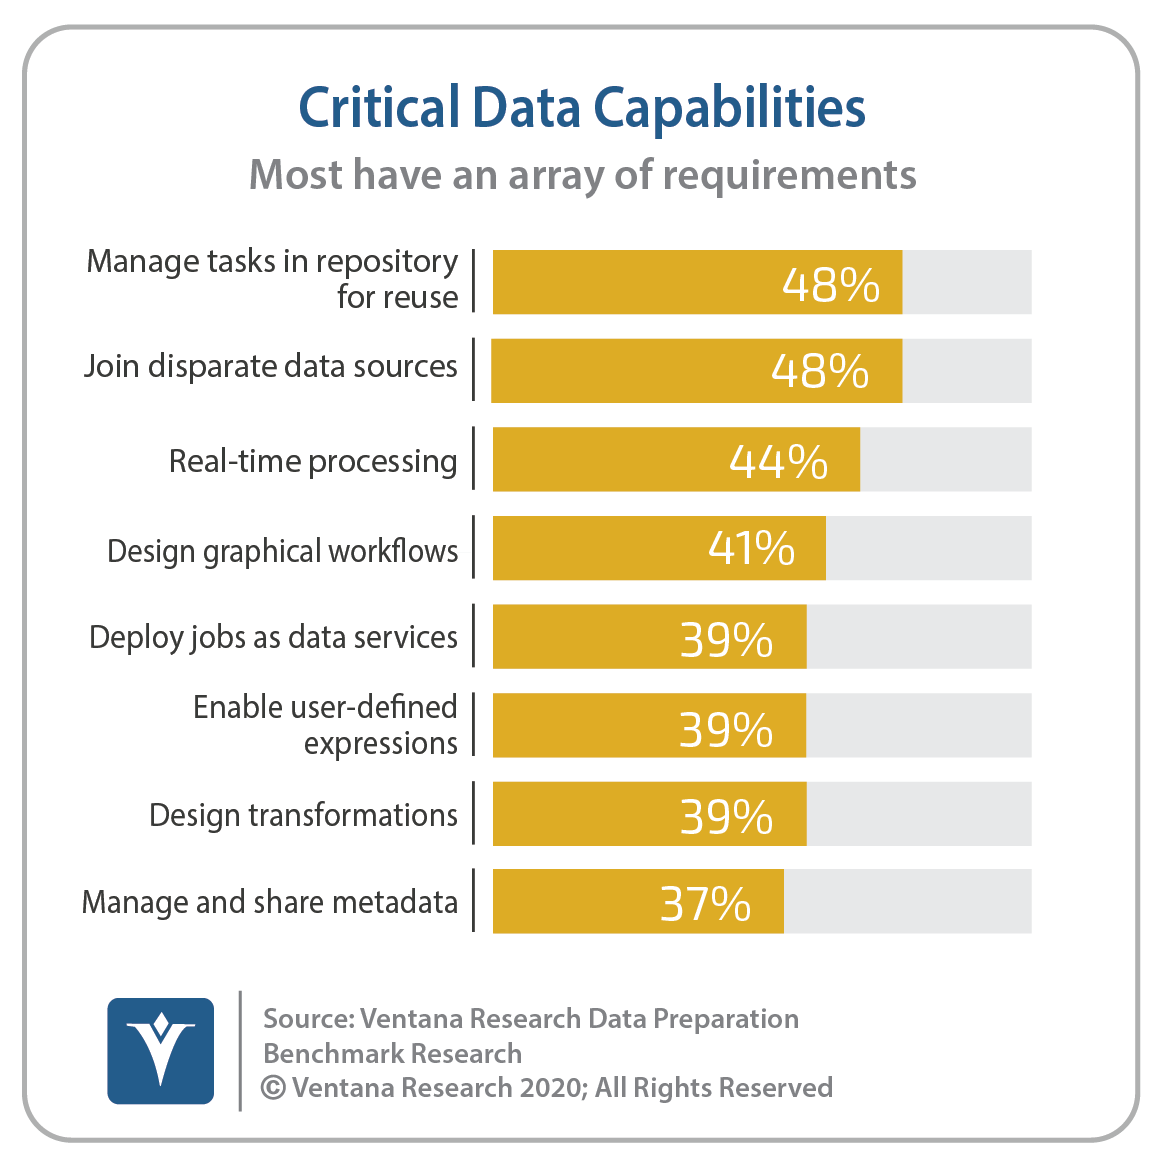 Ventana_Research_Benchmark_Research_Data_Prep17_09_Critical_Data_Capabilities_Expanded_200406